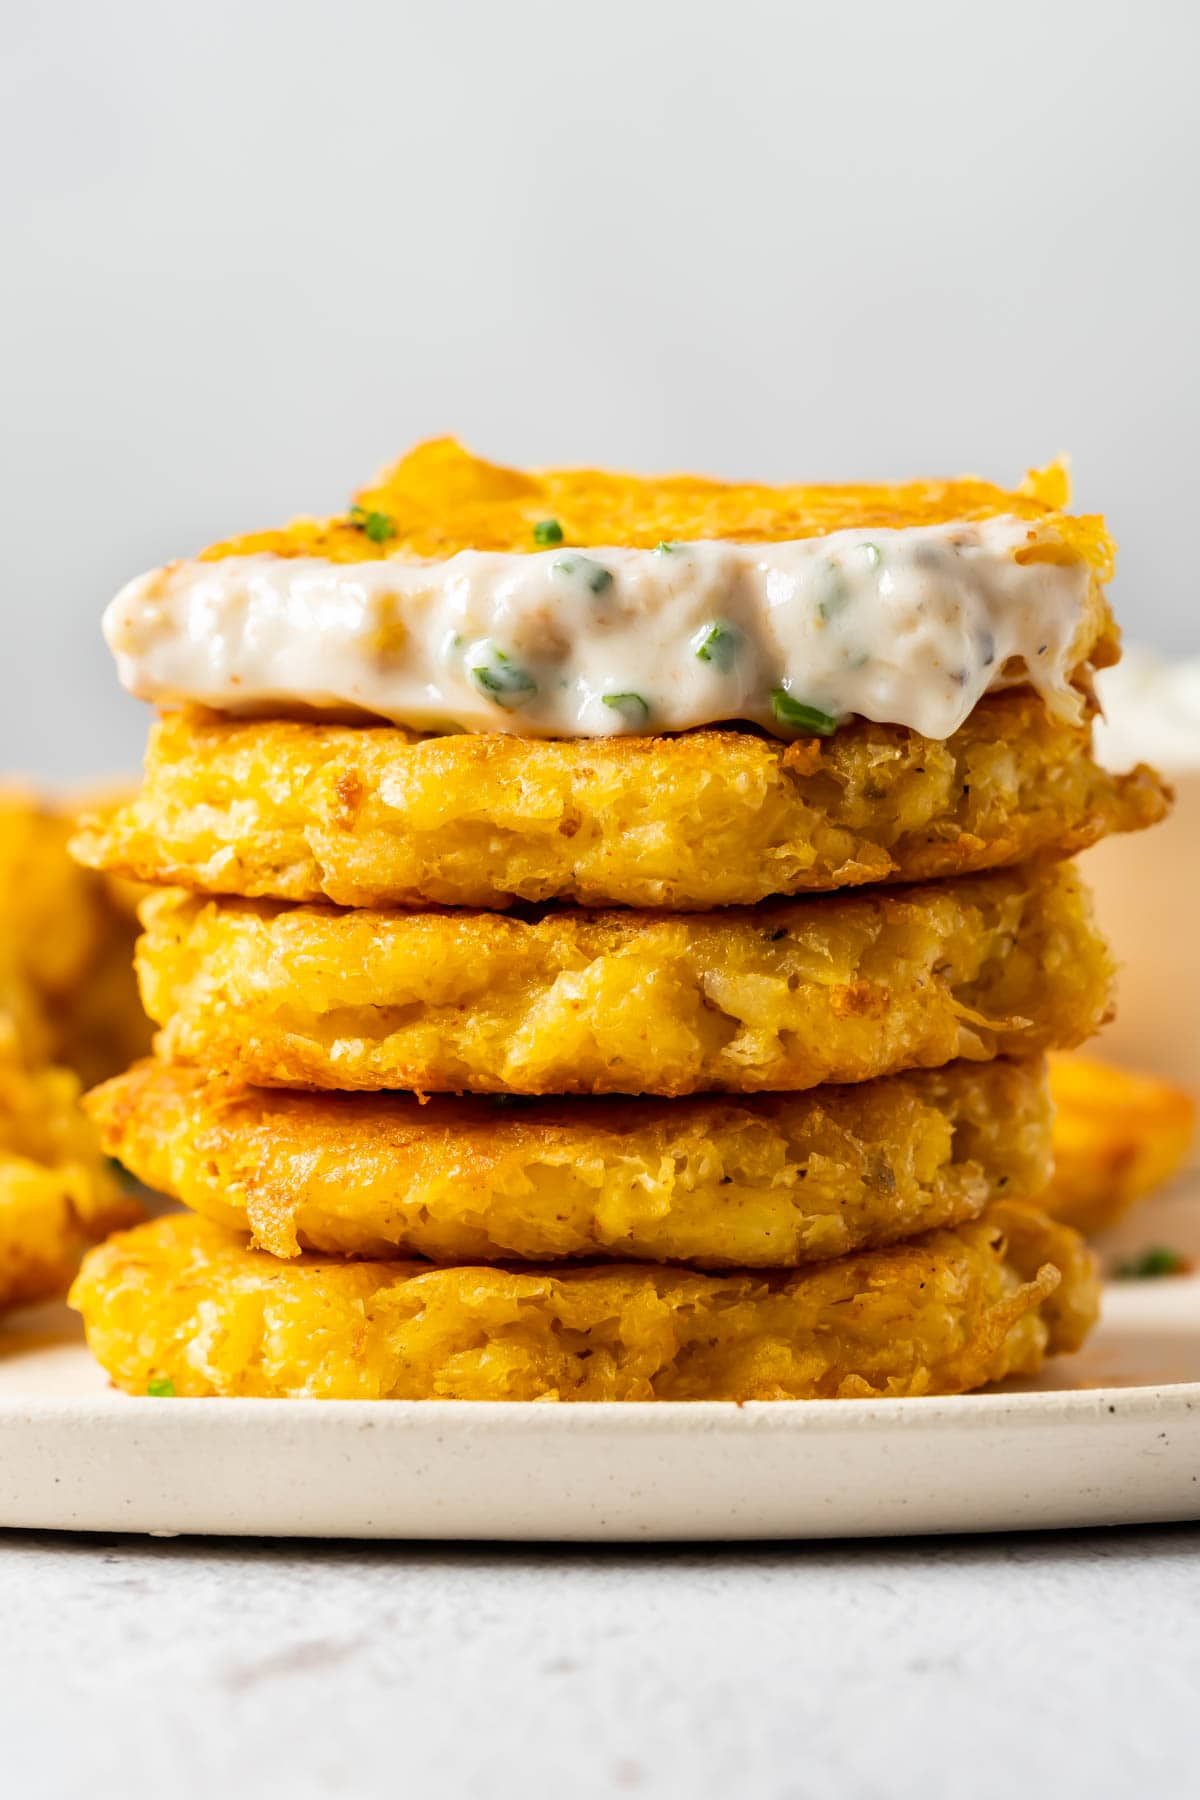 Stack of potato fritters on a white plate.